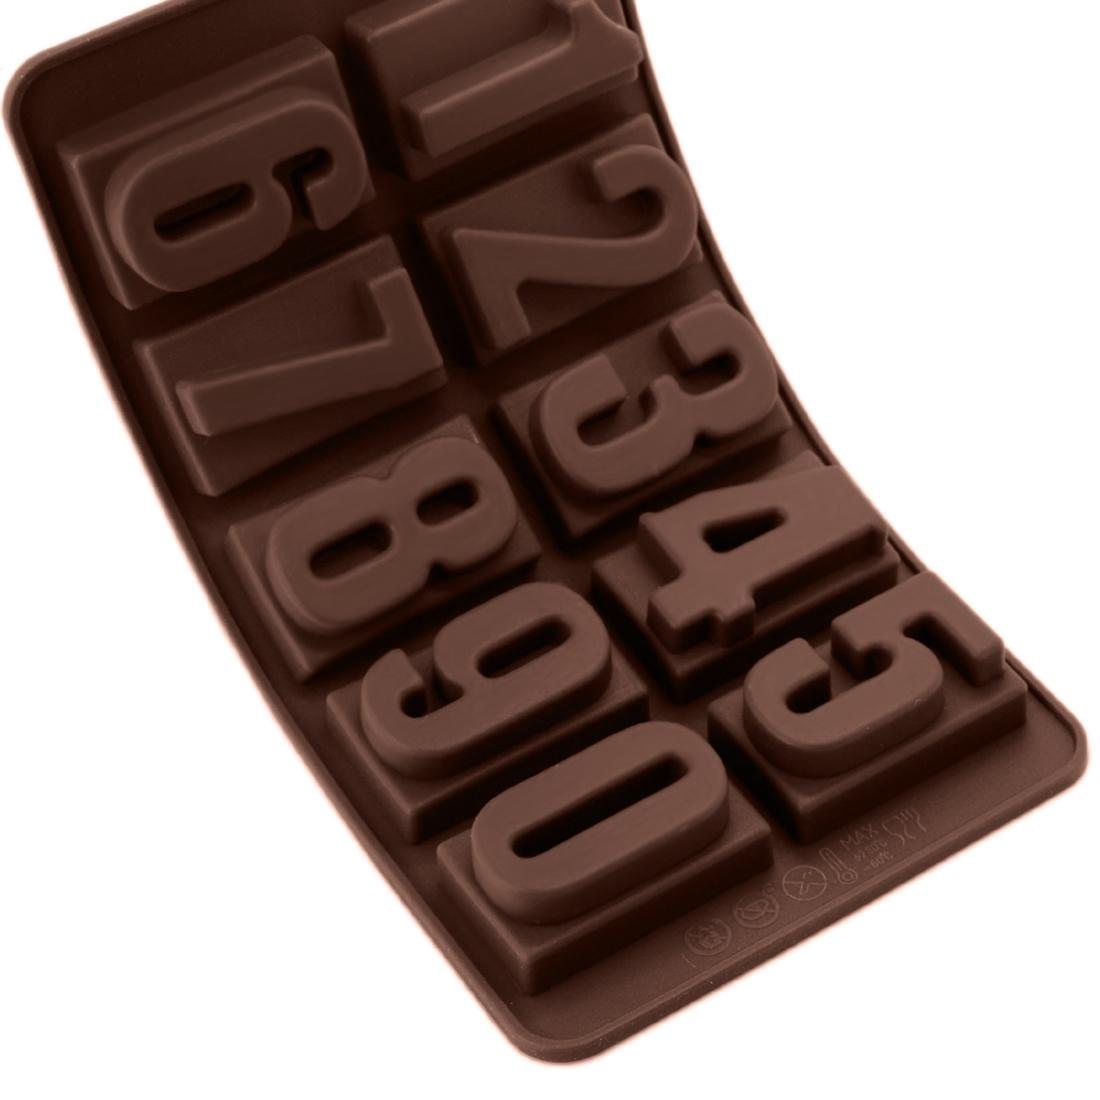 3D Kitchen Accessories 10 Holes Number Shape Soap Chocolate Mold Silicone Stencils Cookings for Baking